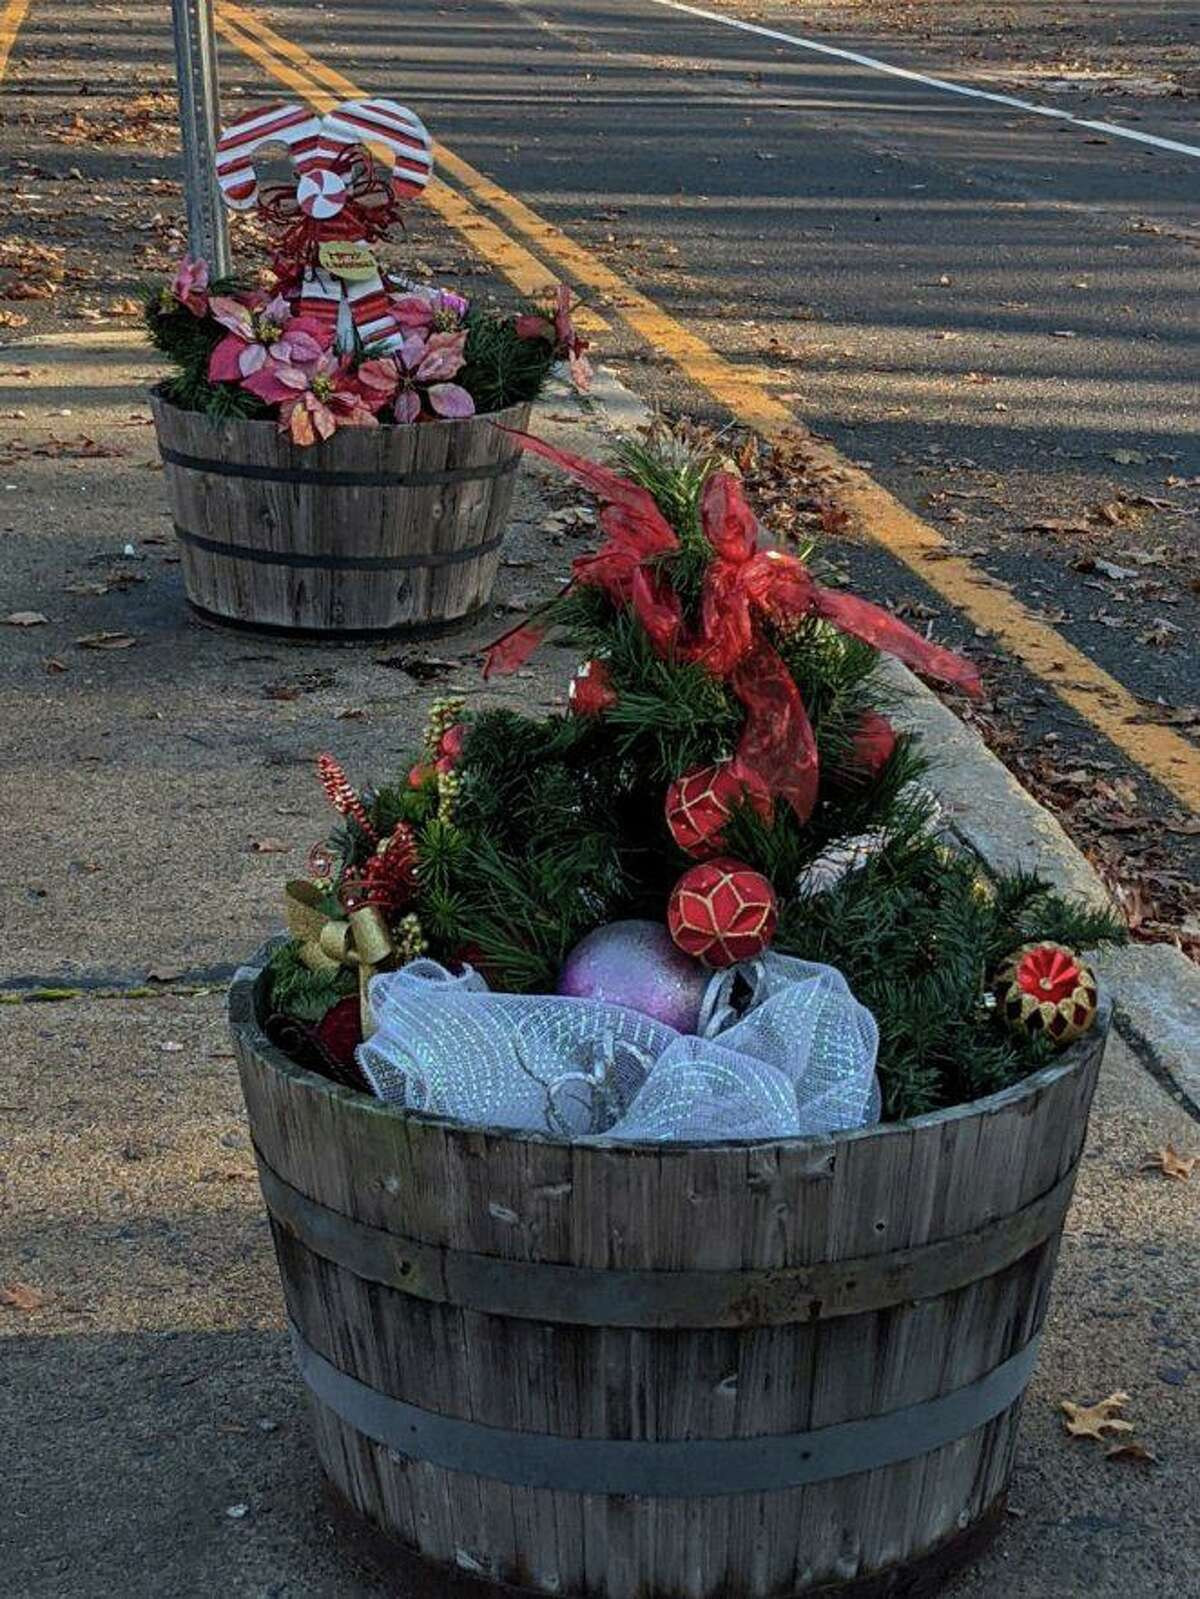 Members of the North Haven Garden Club provided holiday decorations in barrels and pots around town.